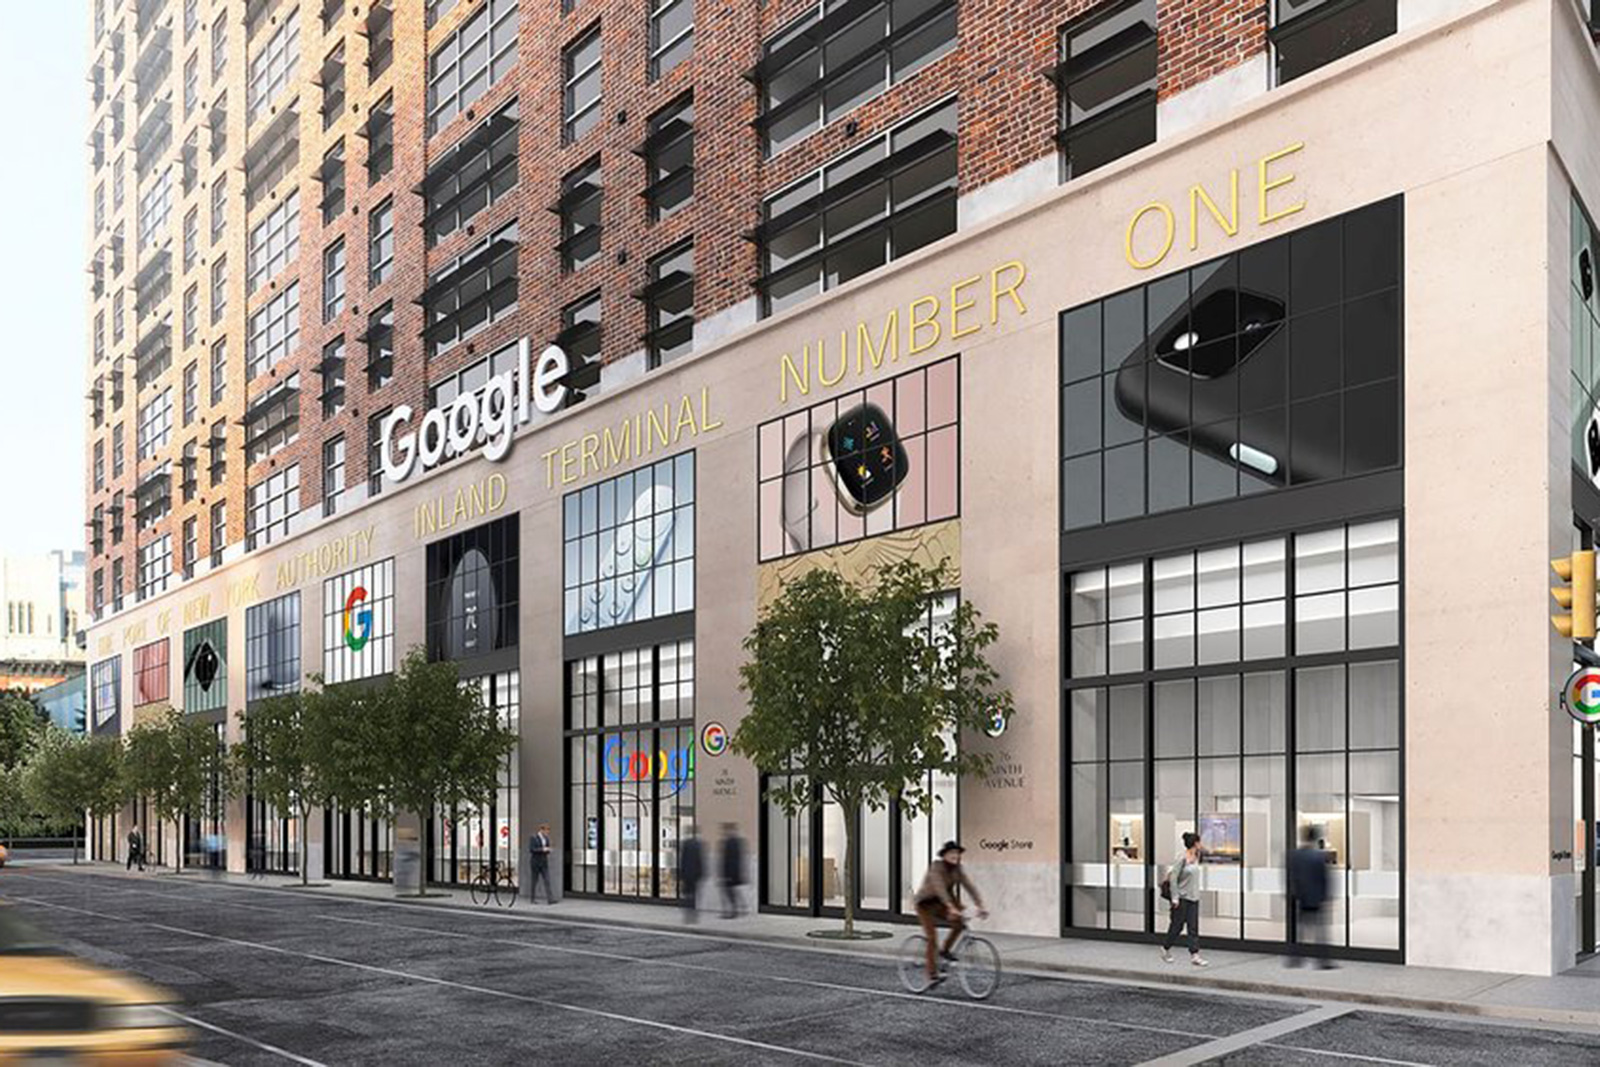 Google will open its first retail store in New York City this summer | Engadget